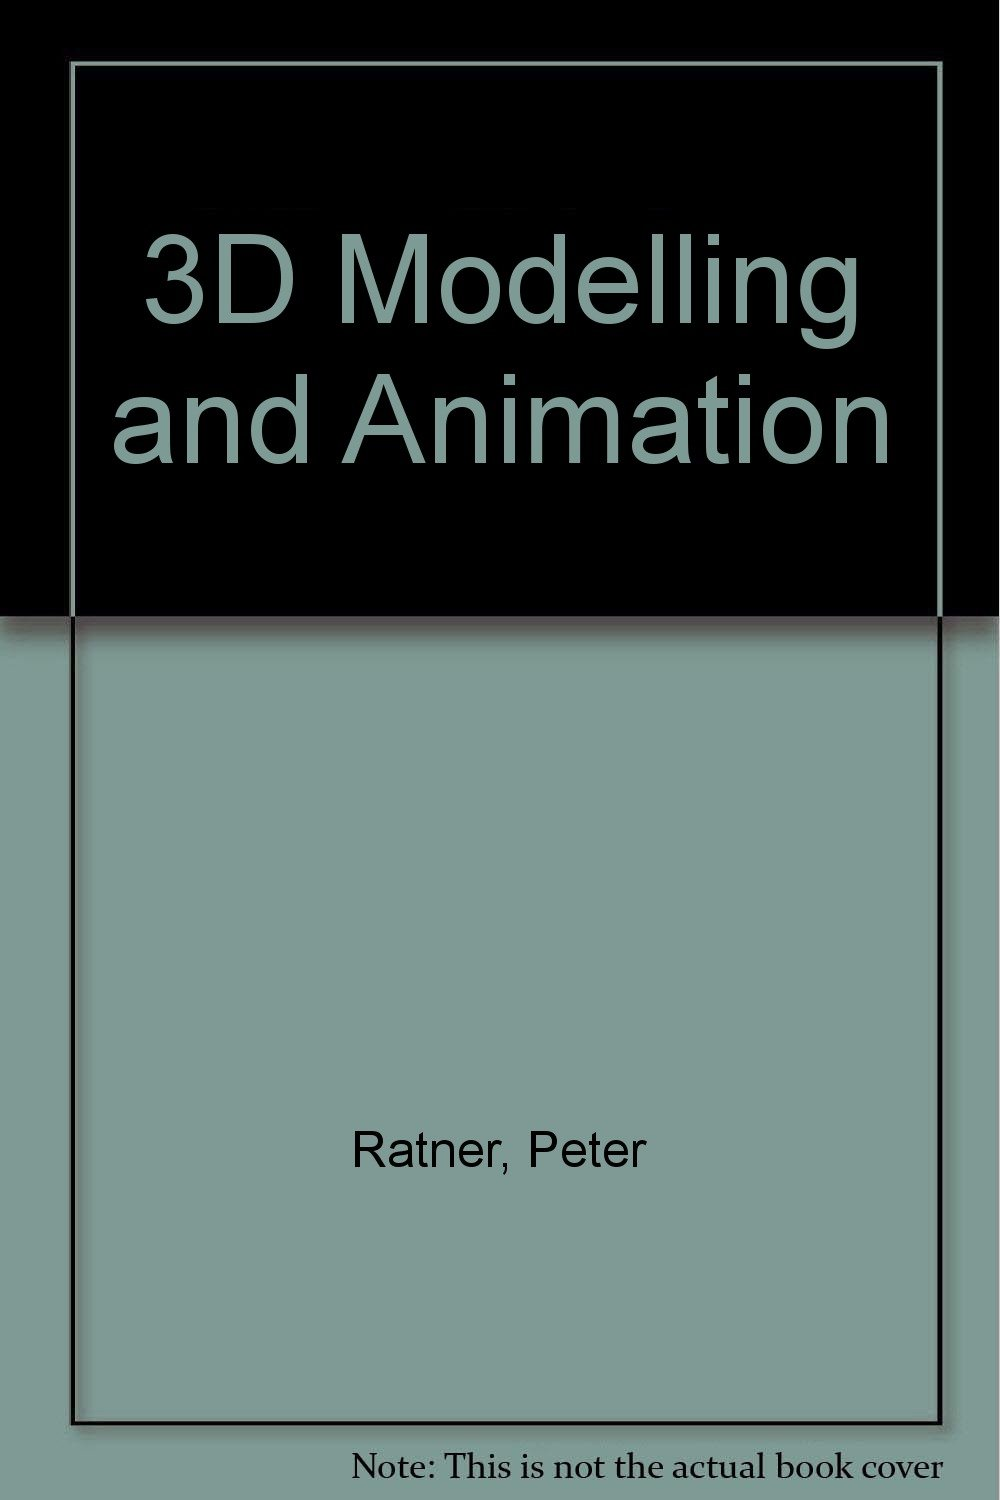 3D Modelling and Animation: Amazon co uk: Peter Ratner